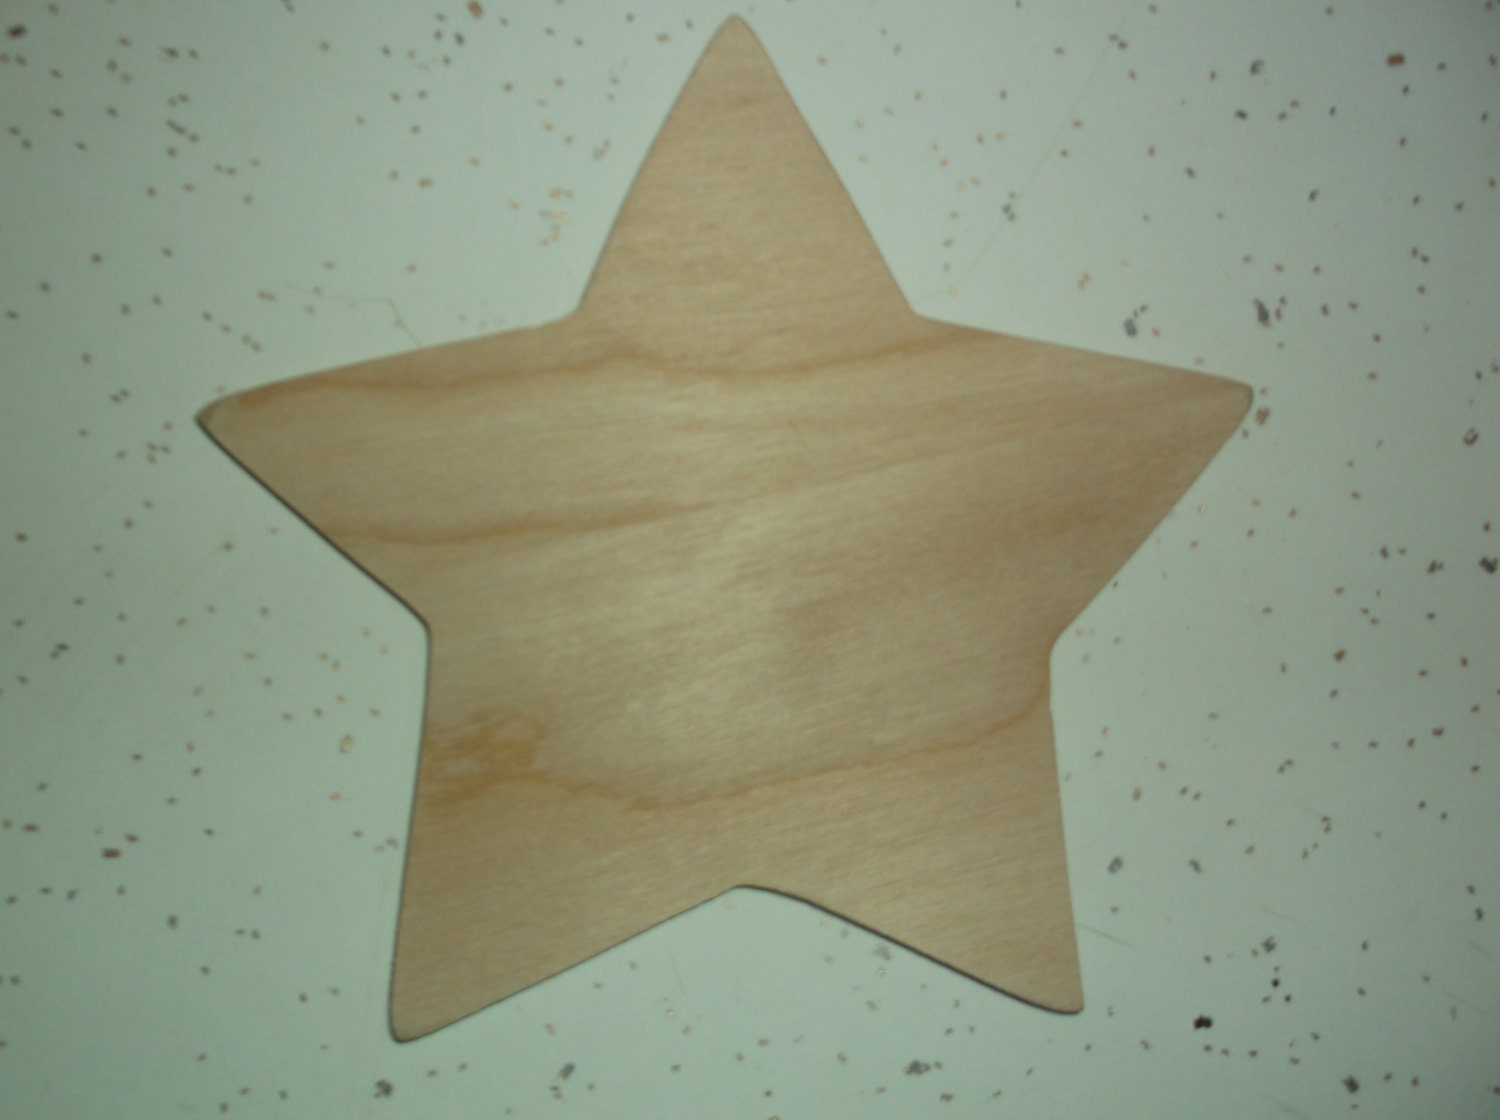 Unfinished Wood Star Wooden Star Star Cut Out Star Shape